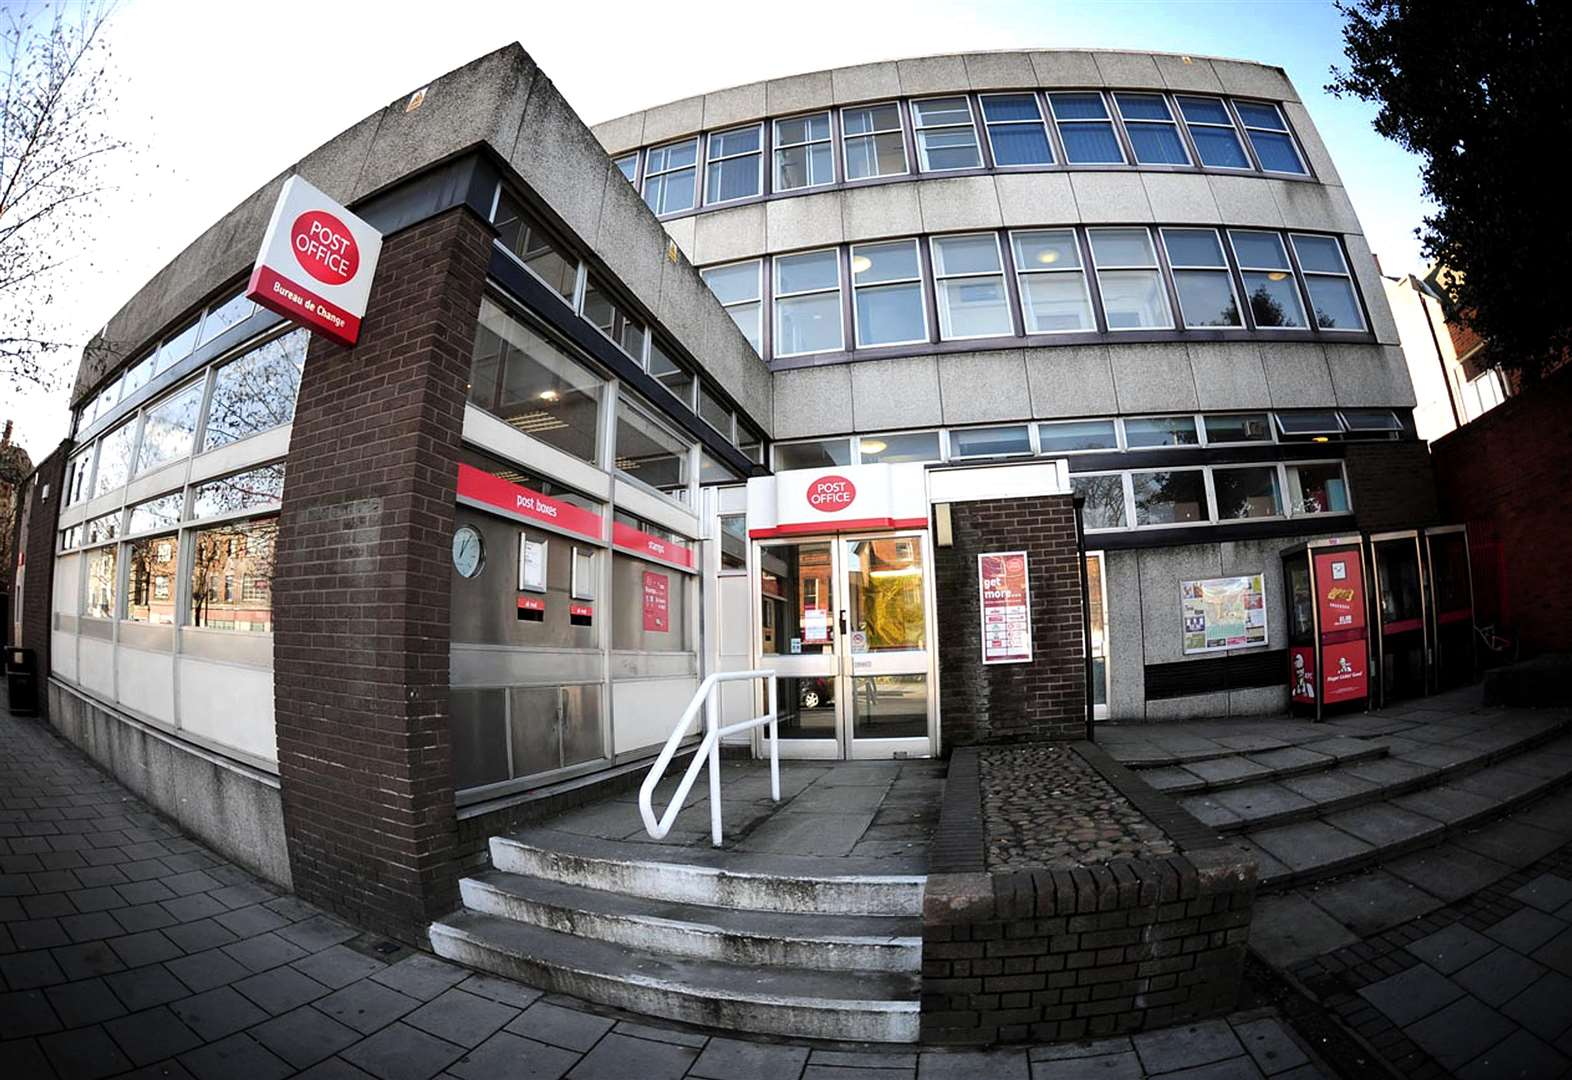 'Drop-in' session to be held in Grantham as part of post office consultation